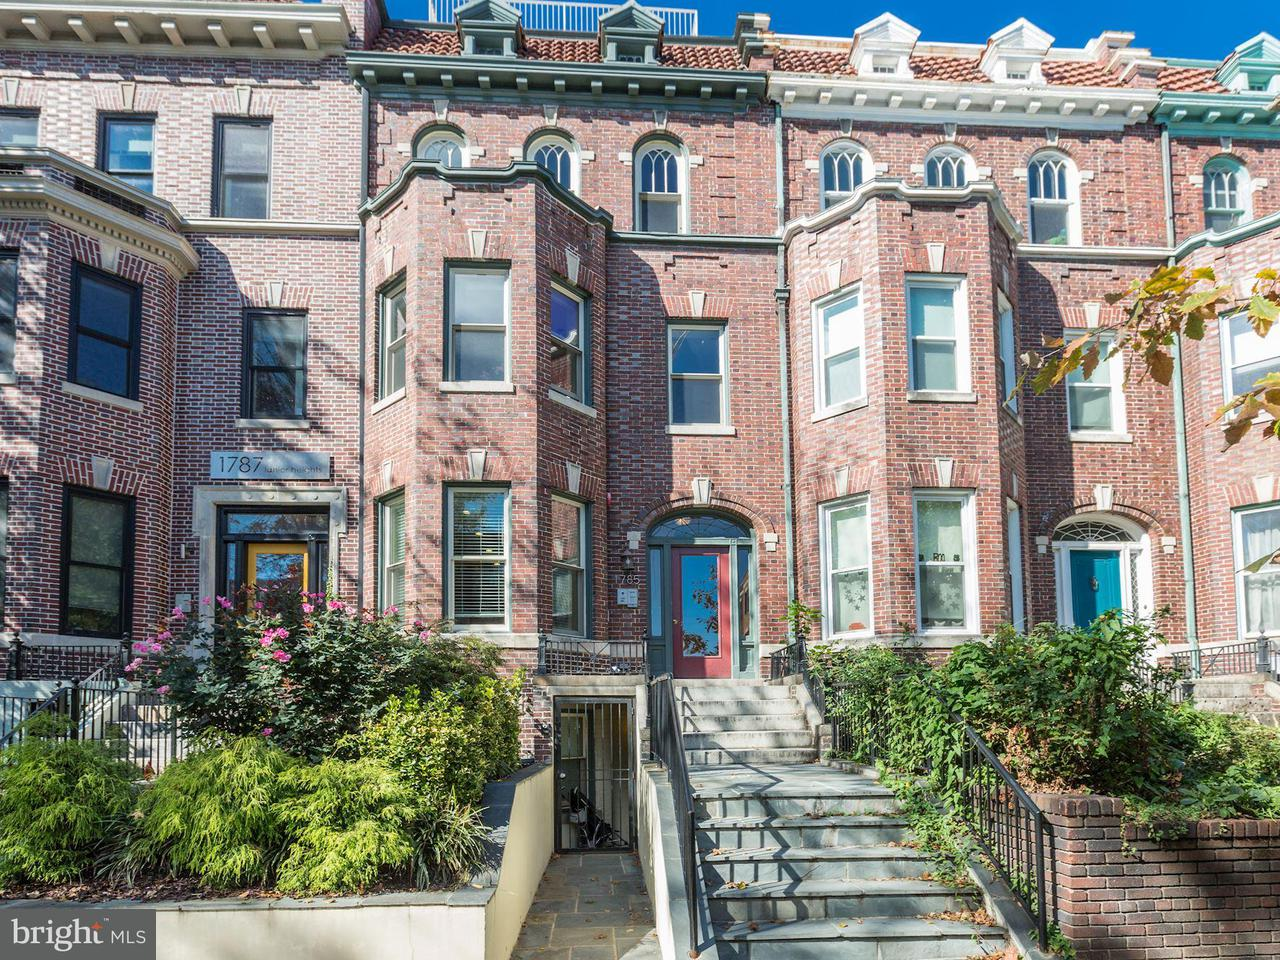 Townhouse for Sale at 1785 LANIER PL NW #2 1785 LANIER PL NW #2 Washington, District Of Columbia 20009 United States